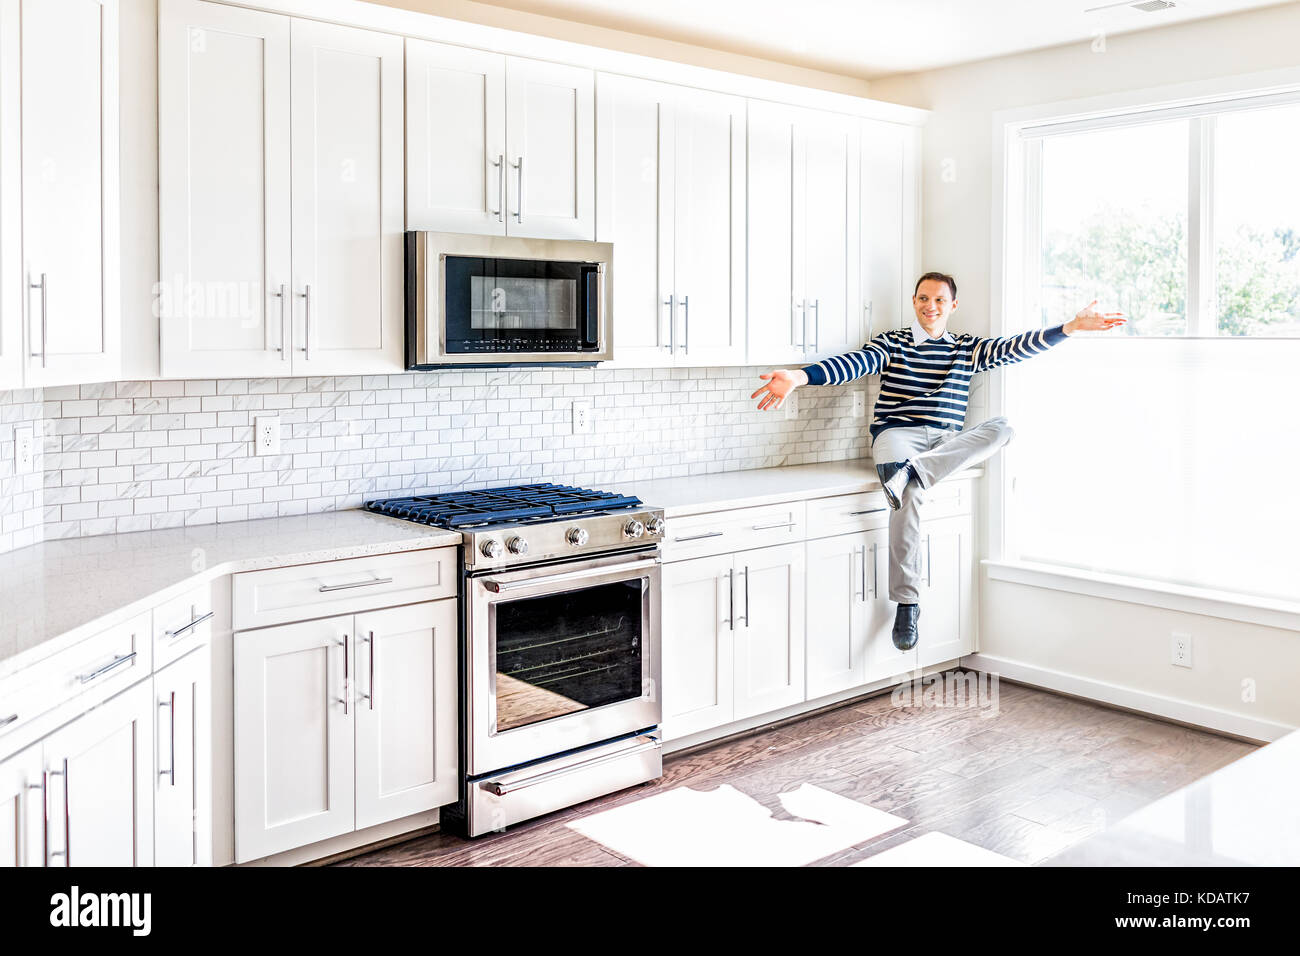 Microwave oven man stock photos microwave oven man stock for Oven cleaner on kitchen countertops